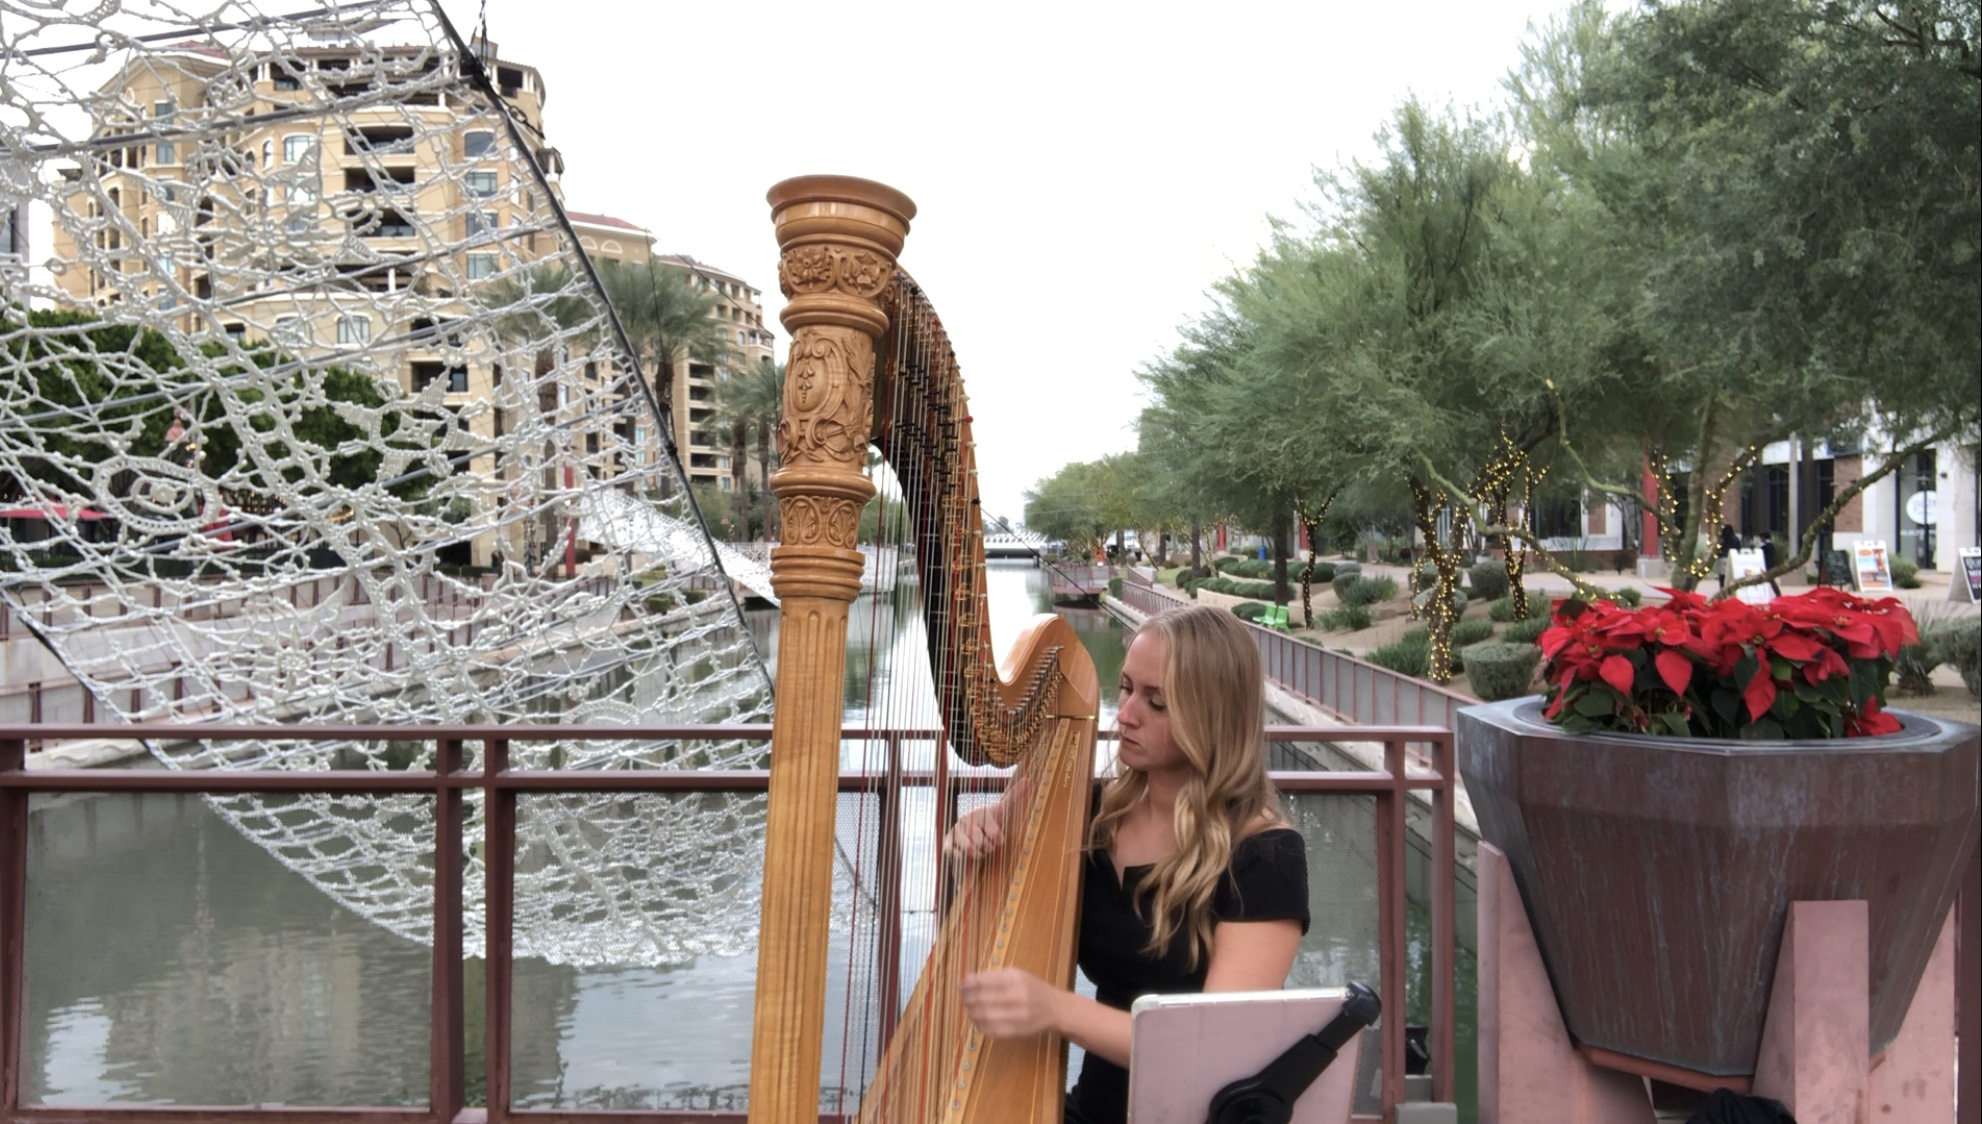 Busking in Old Town, Scottsdale